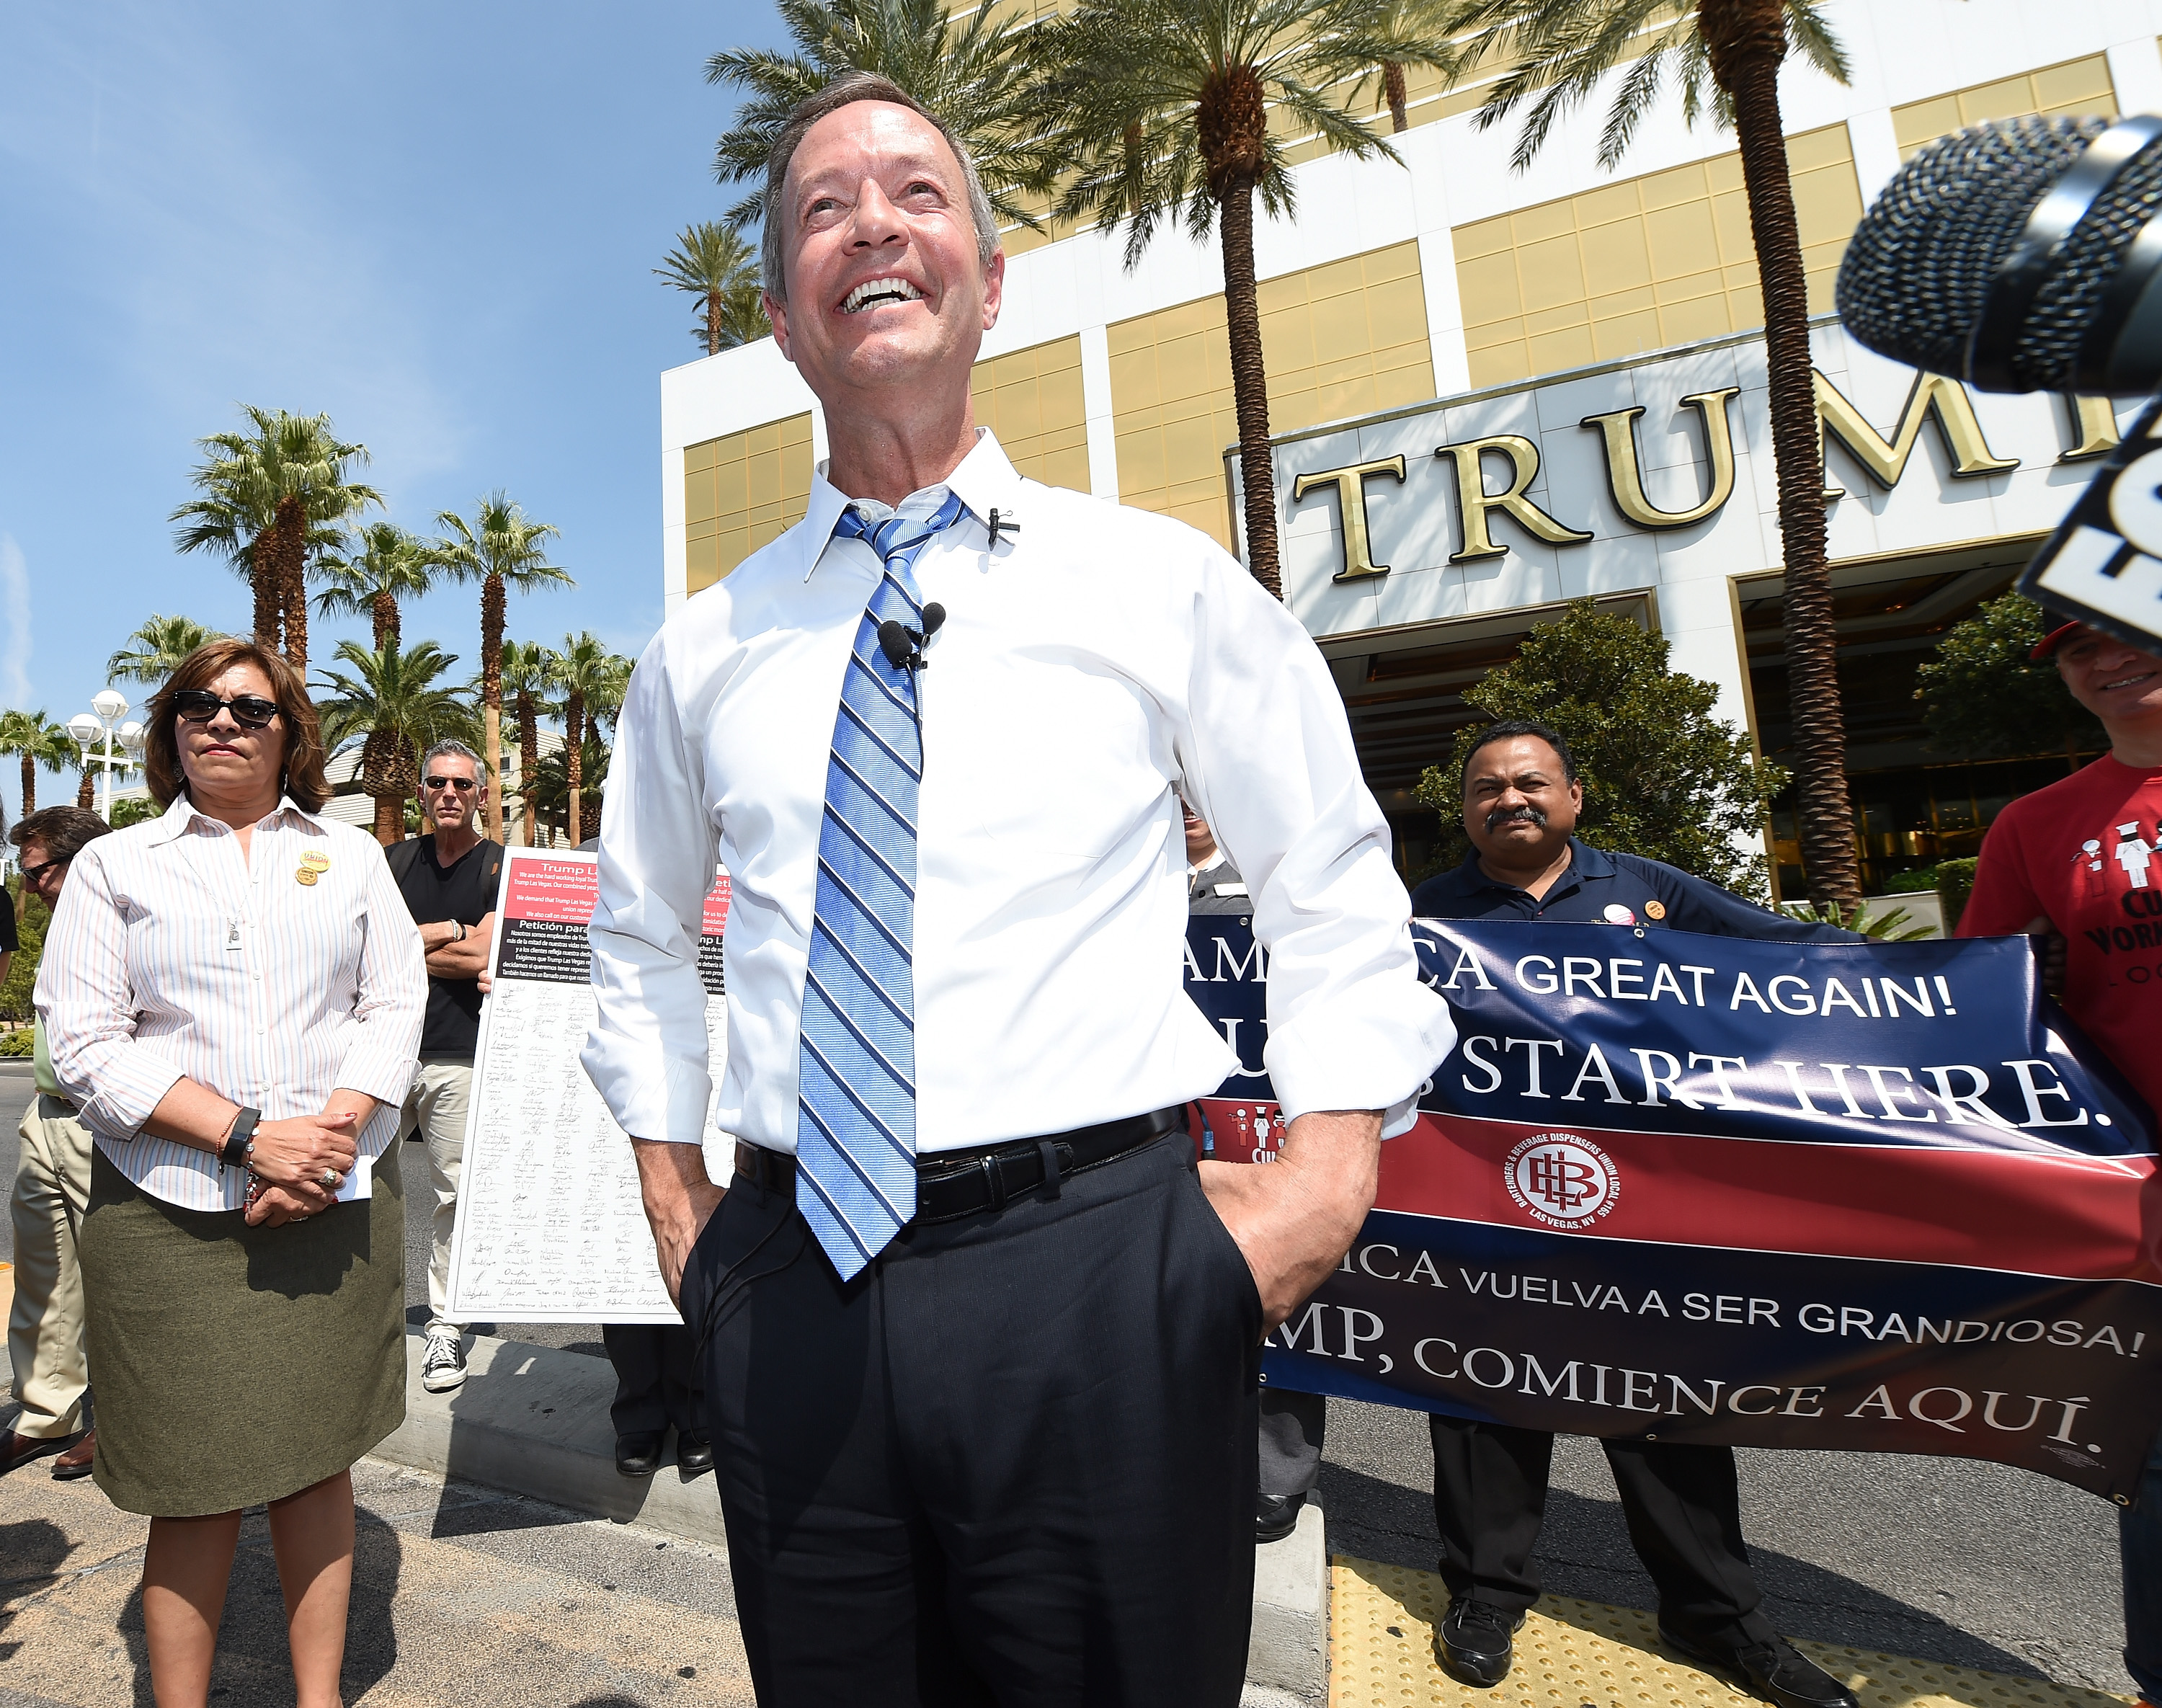 Democratic presidential candidate Martin O'Malley speaks while standing in a median in front of the Trump International Hotel & Tower Las Vegas on August 19, 2015 in Las Vegas, Nevada.